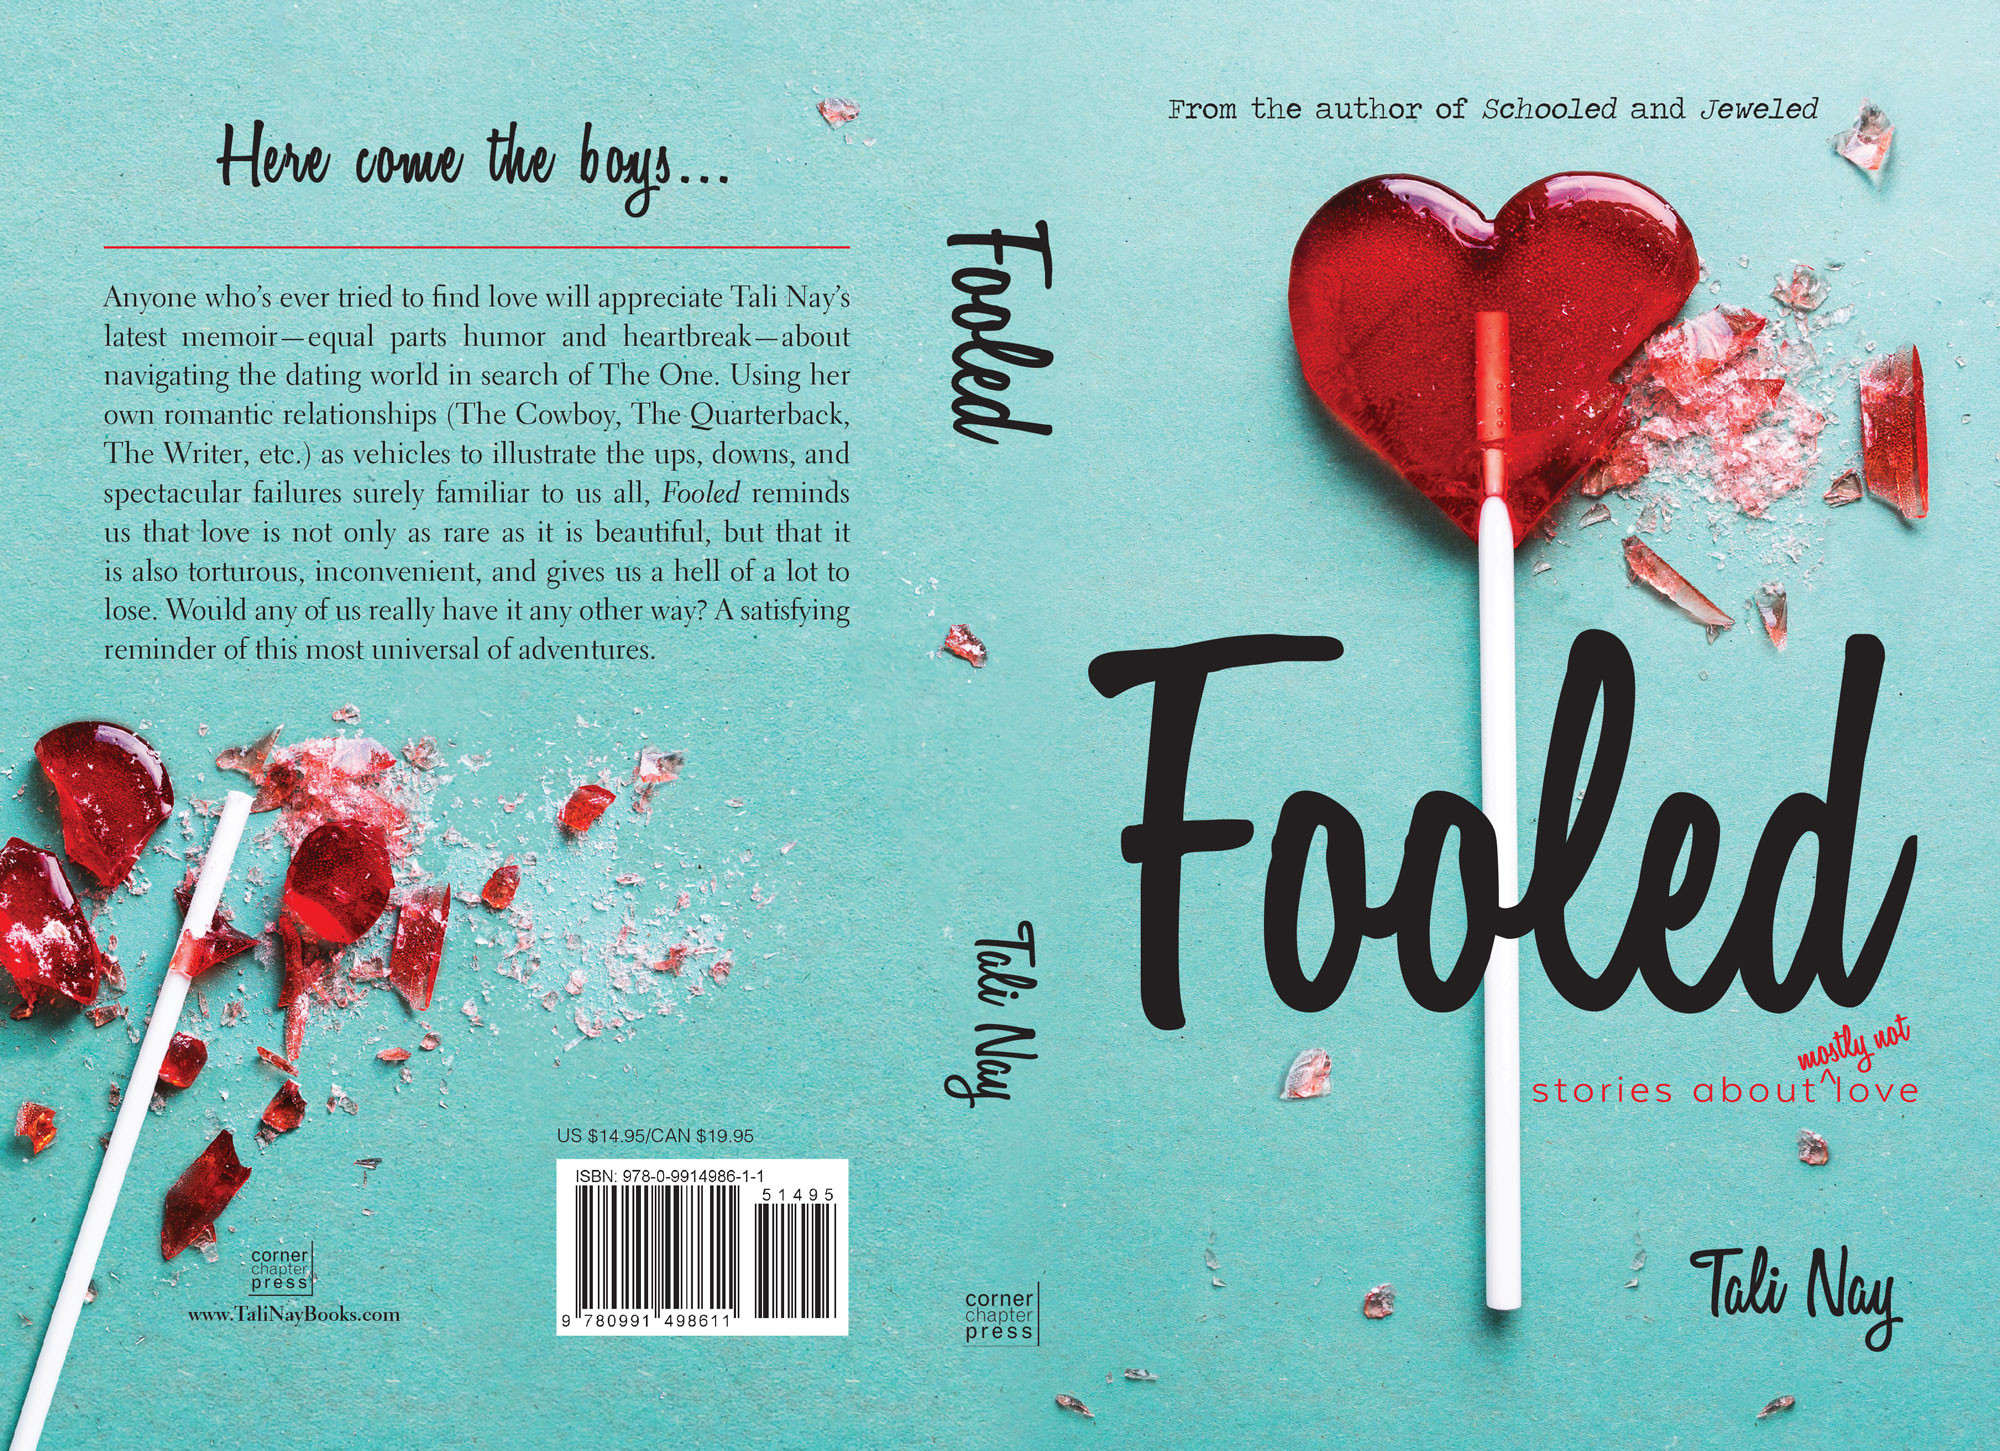 TN_Fooled_CoverSpread_FINAL_120516-170.jpg